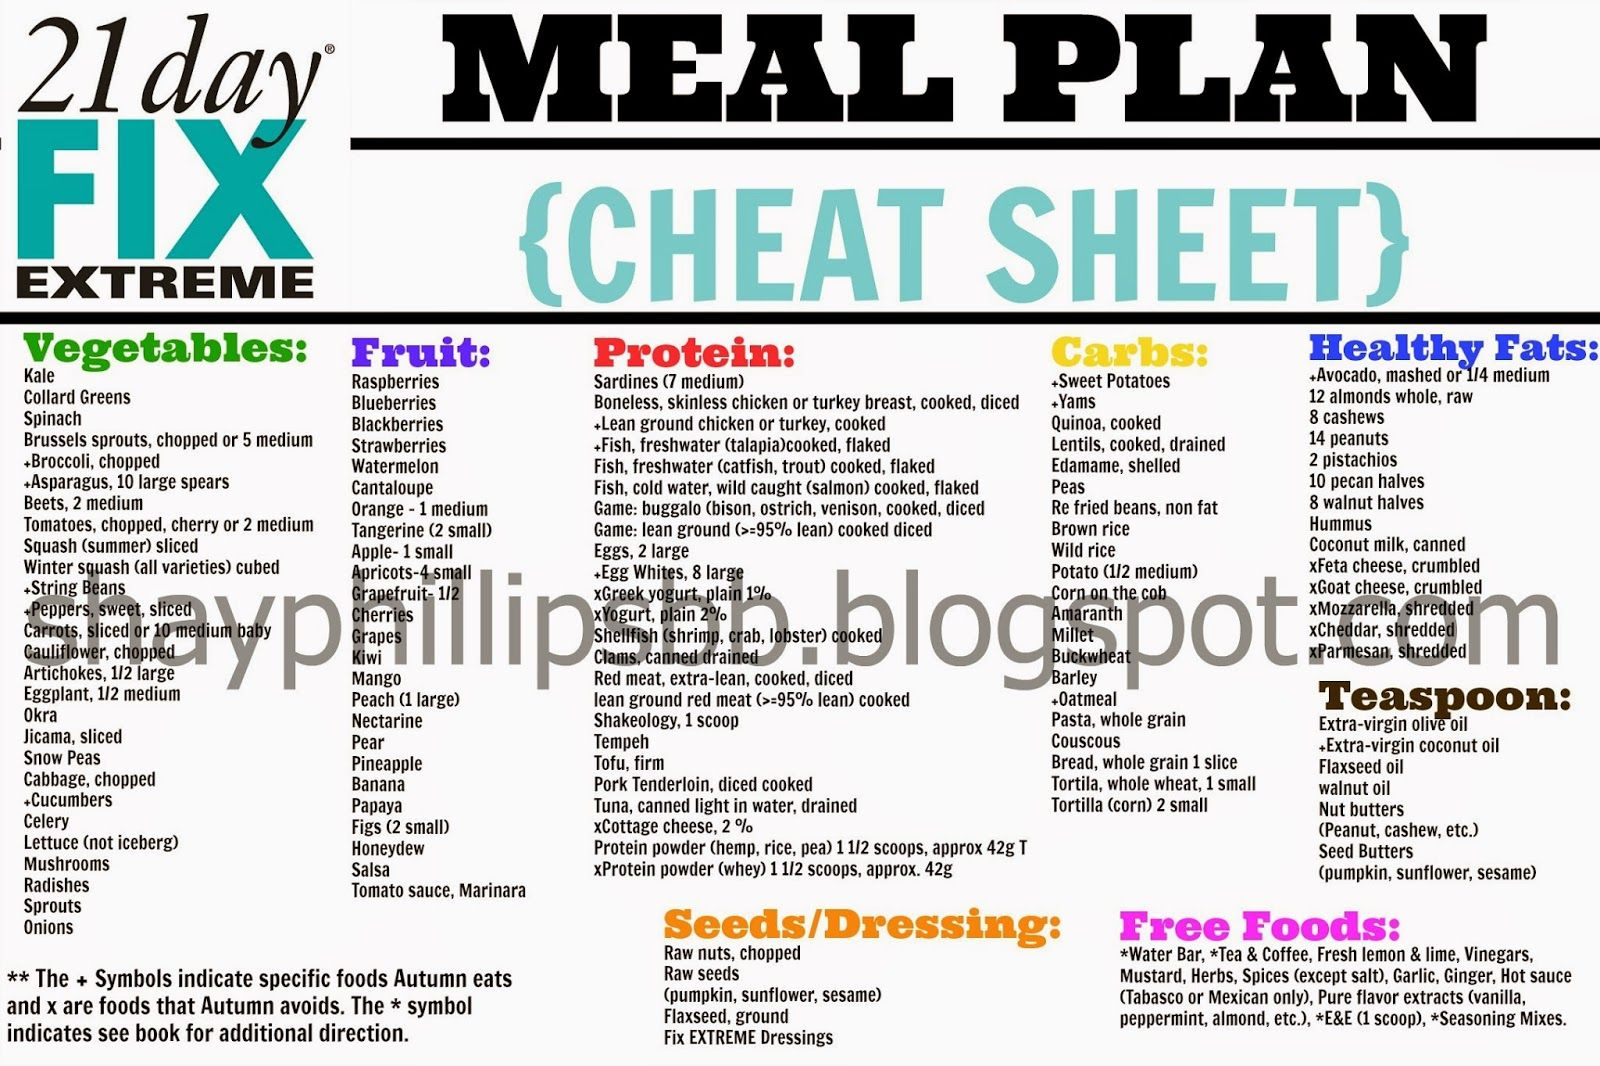 21 Day Fix Extreme Meal Plancheat Sheet I Would Love To